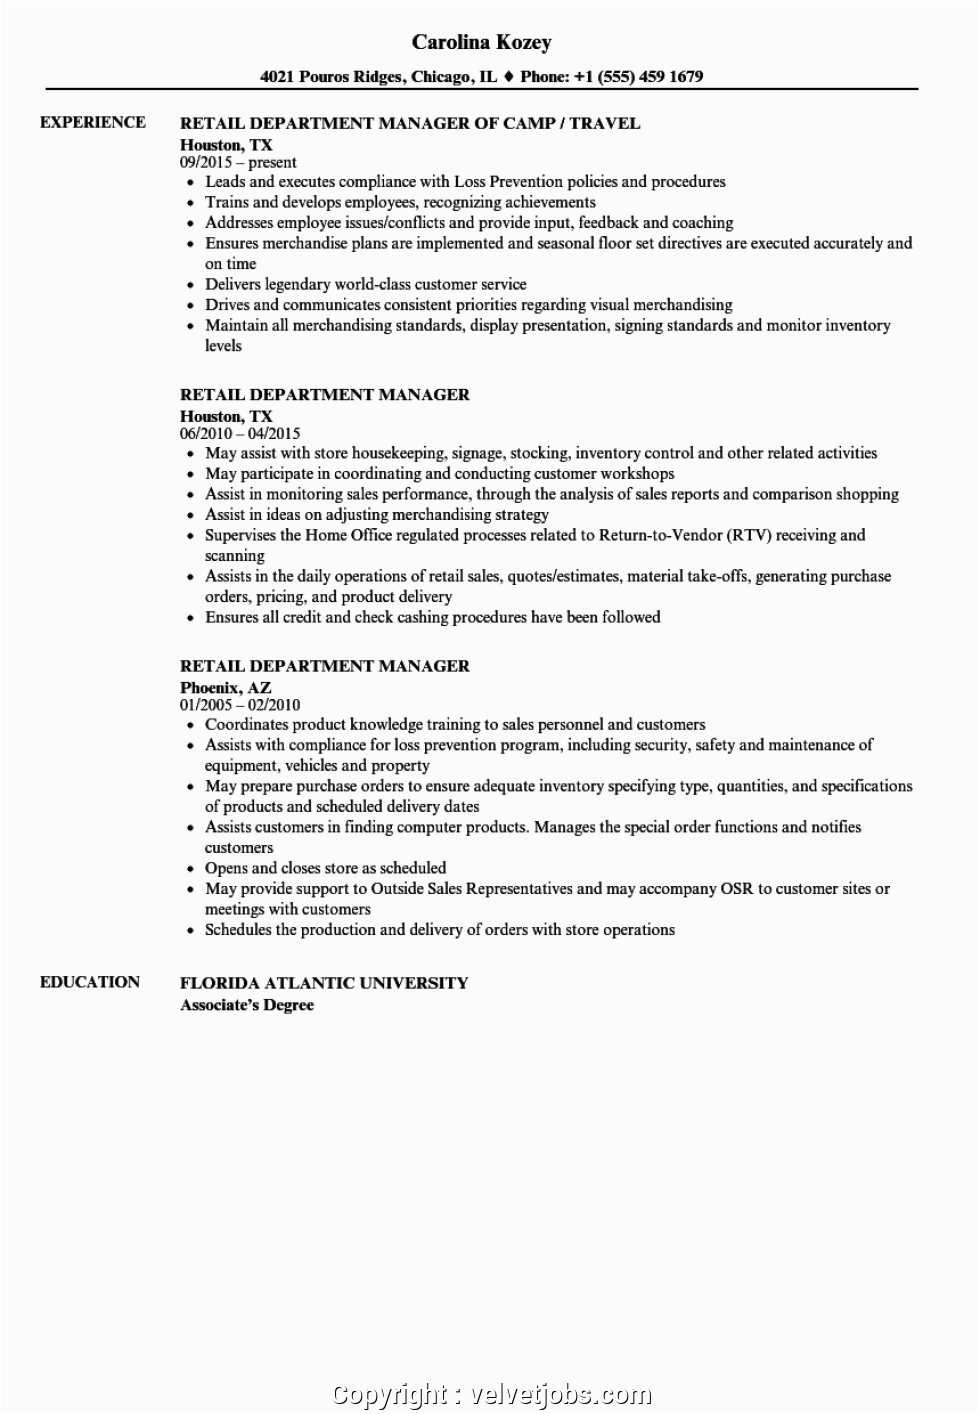 executive retail department manager resume